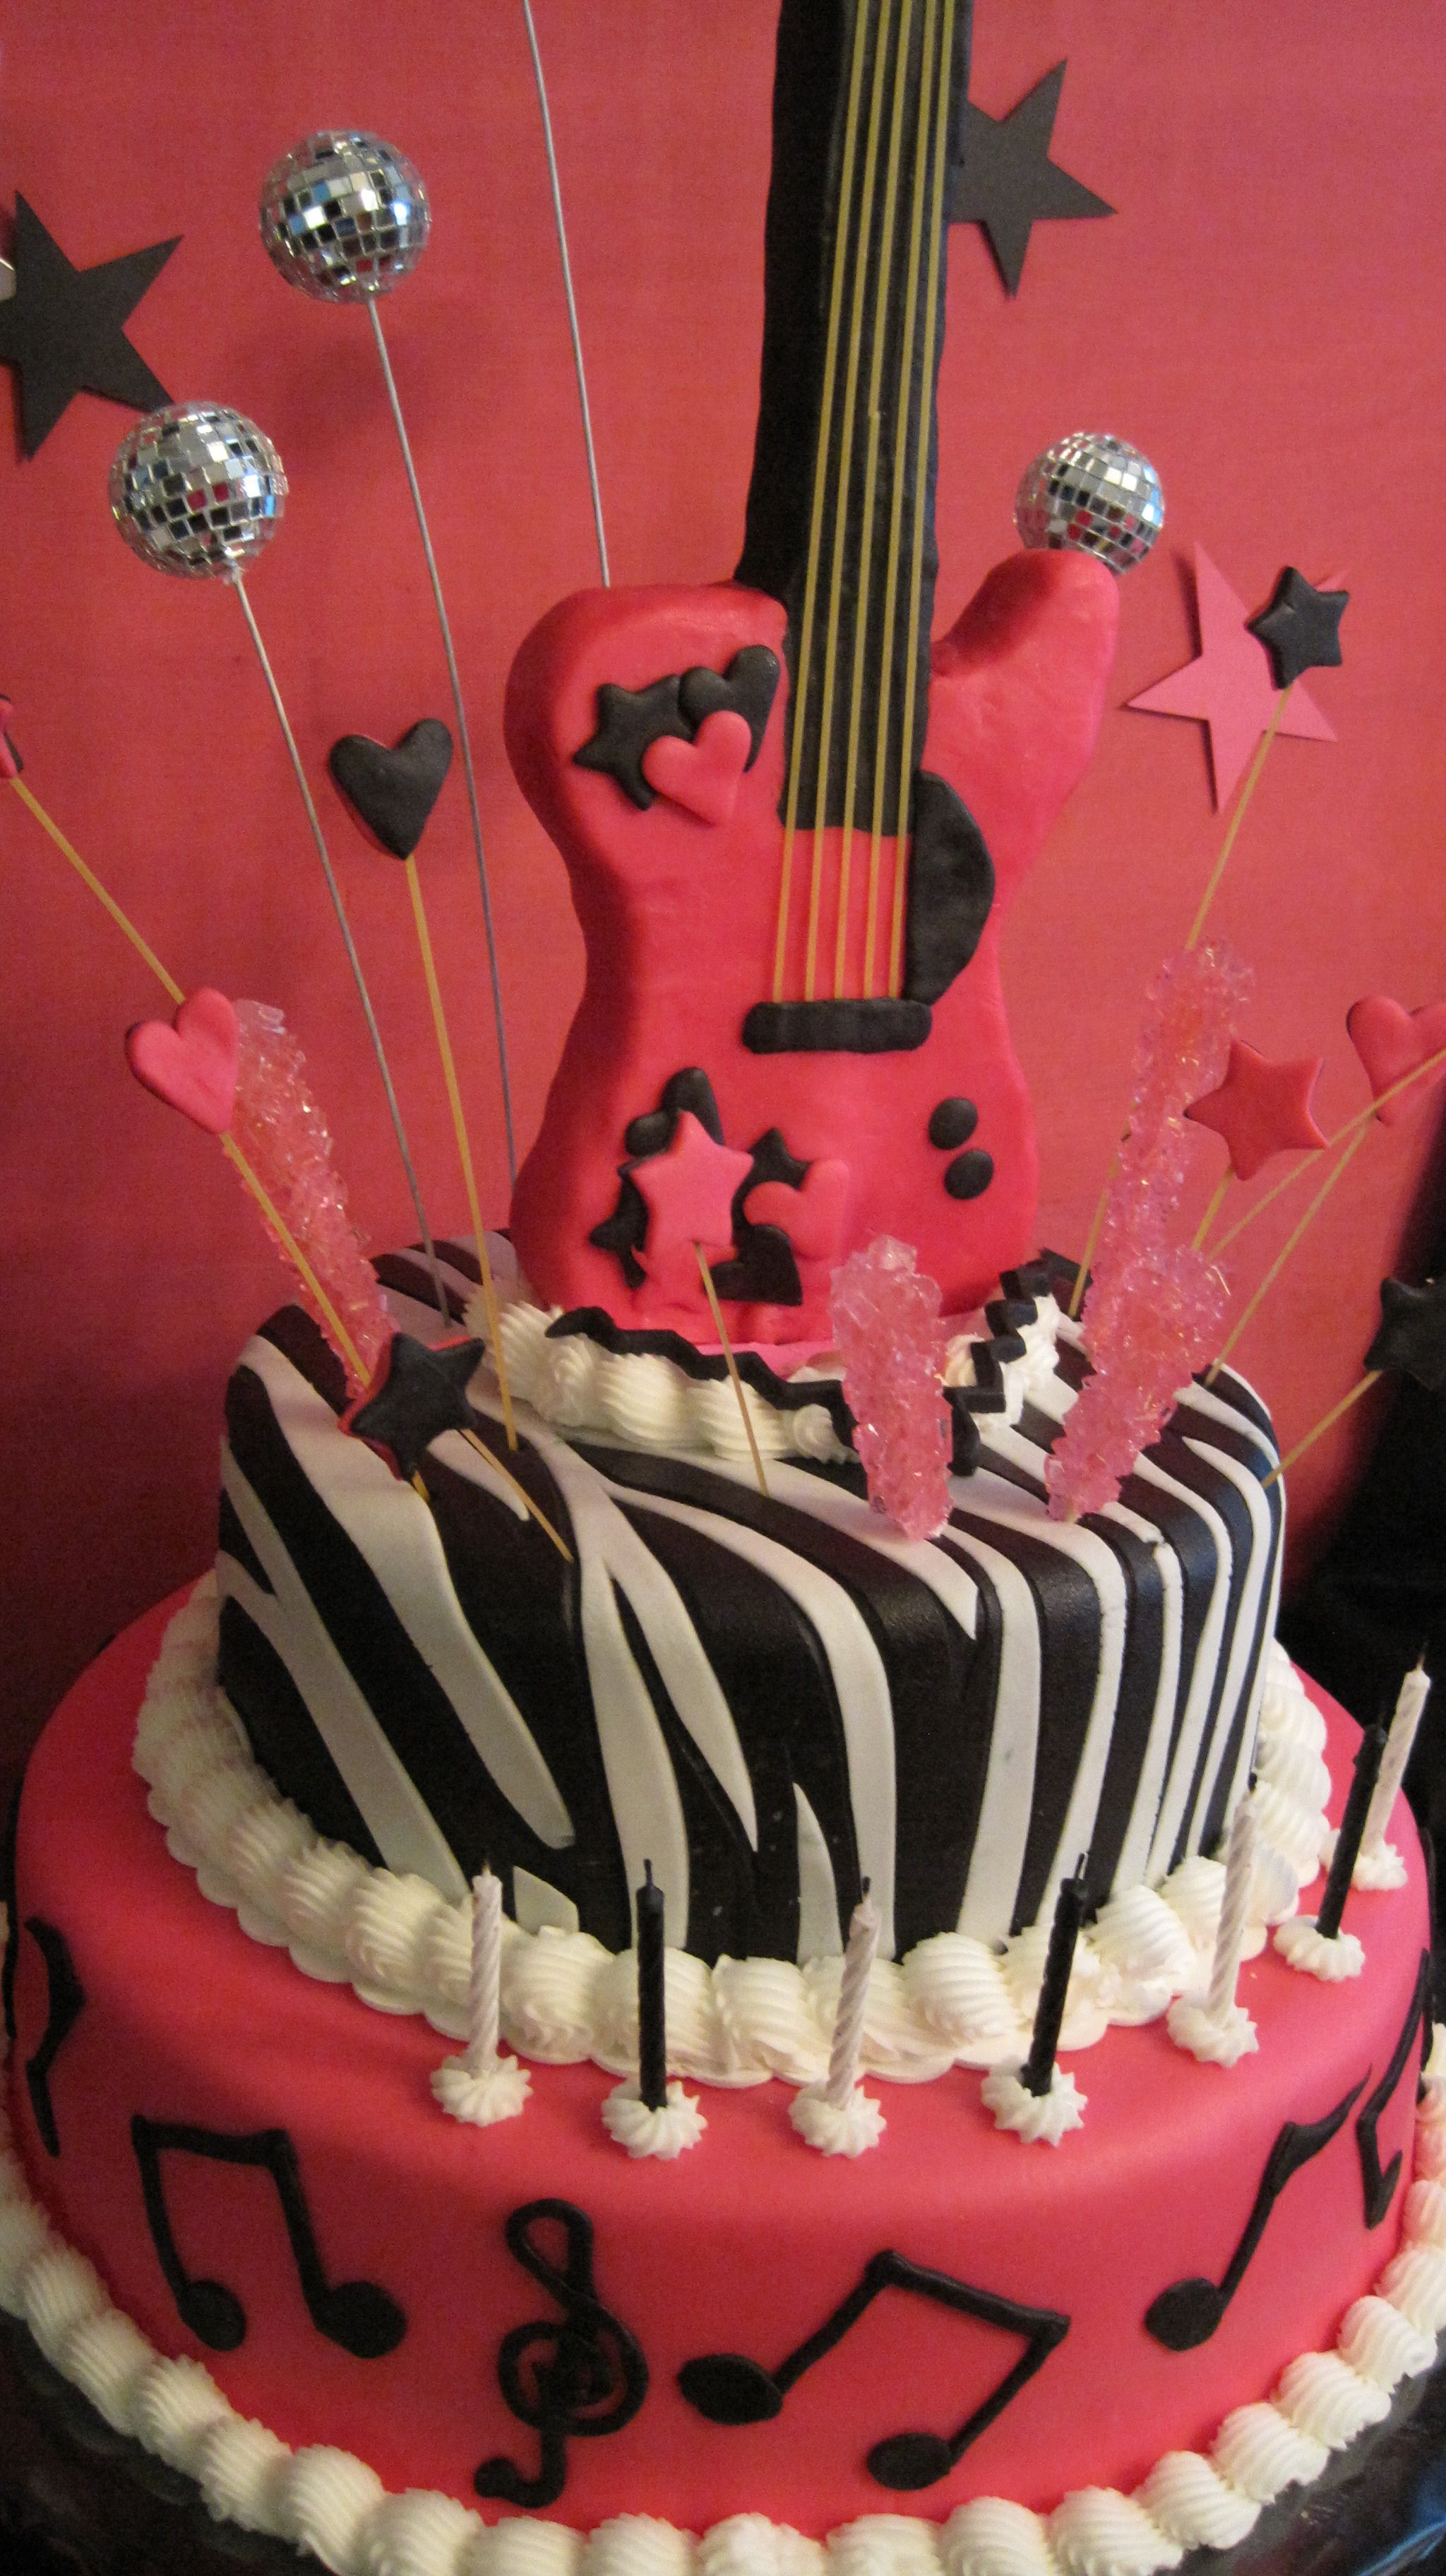 Instead of invitations to a rock star party | Rock n roll bday ...